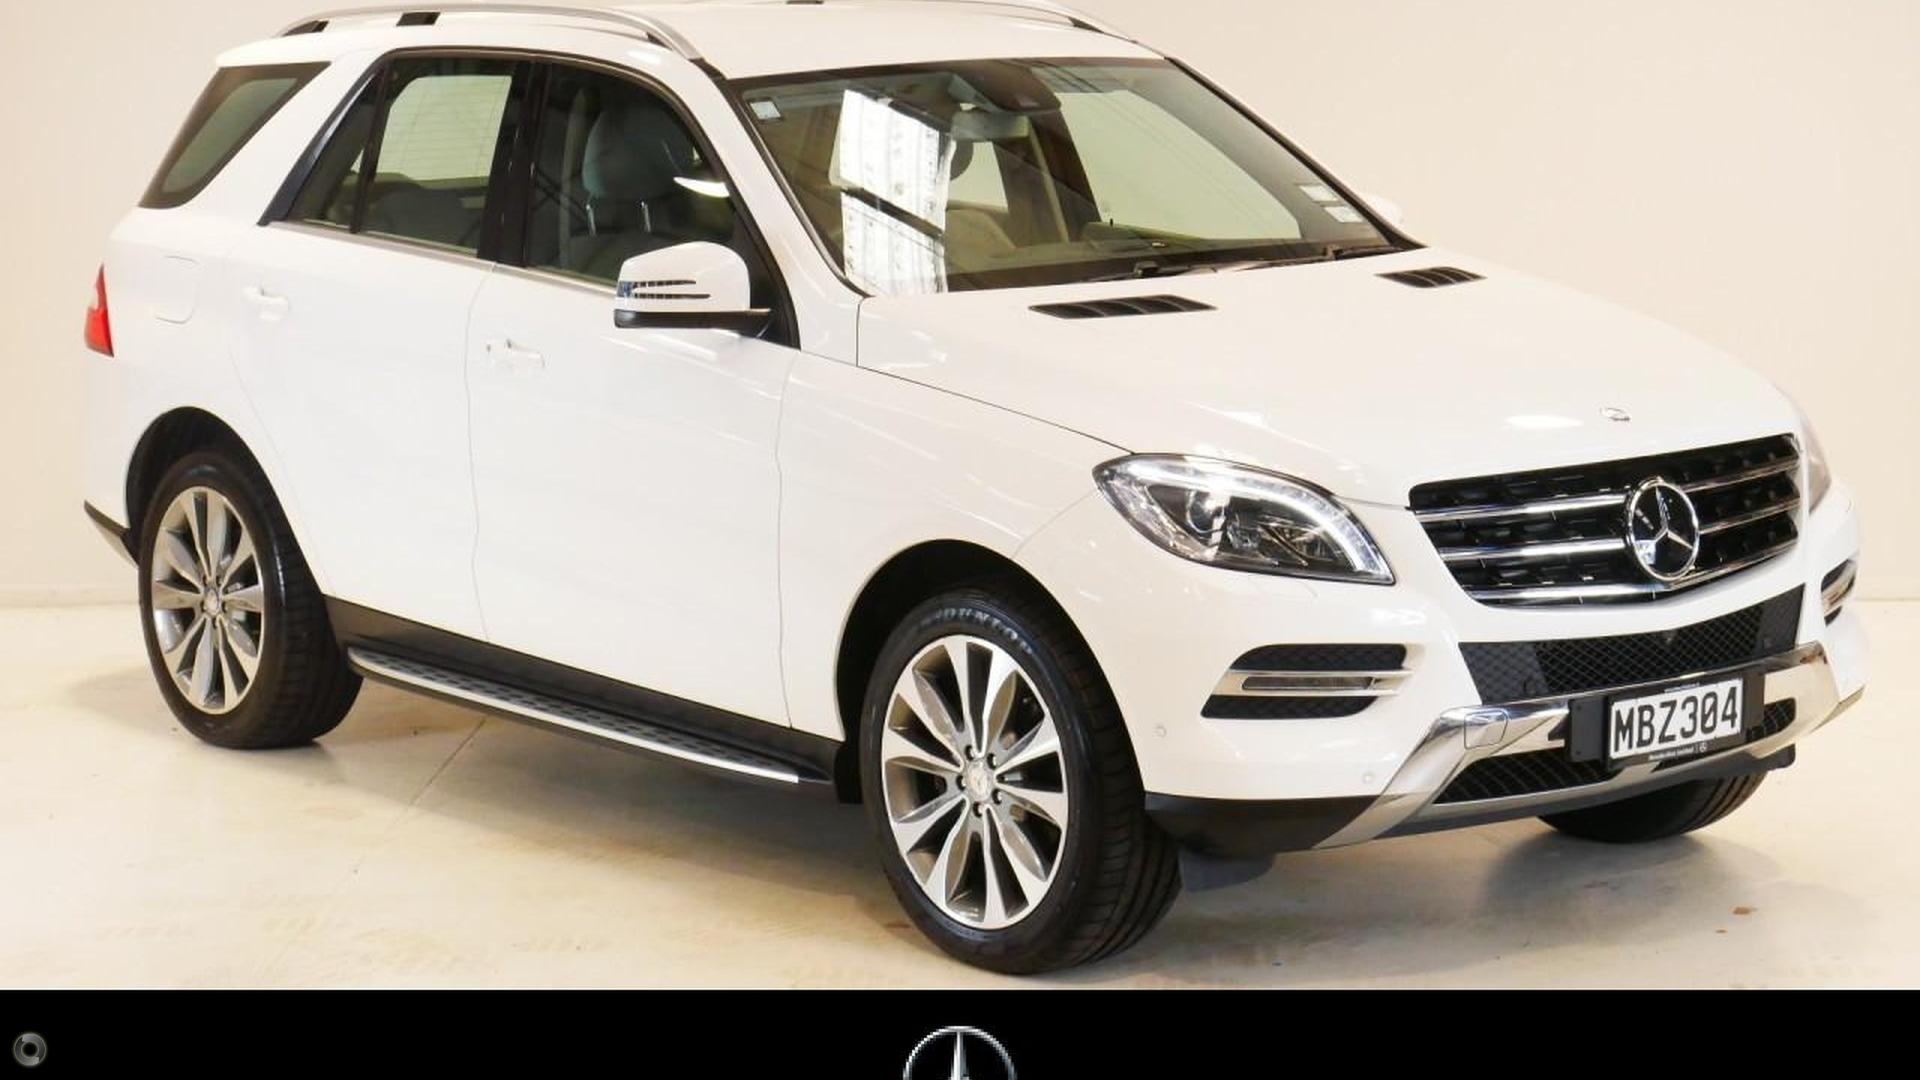 2015 Mercedes-Benz ML 350 CDI SUV